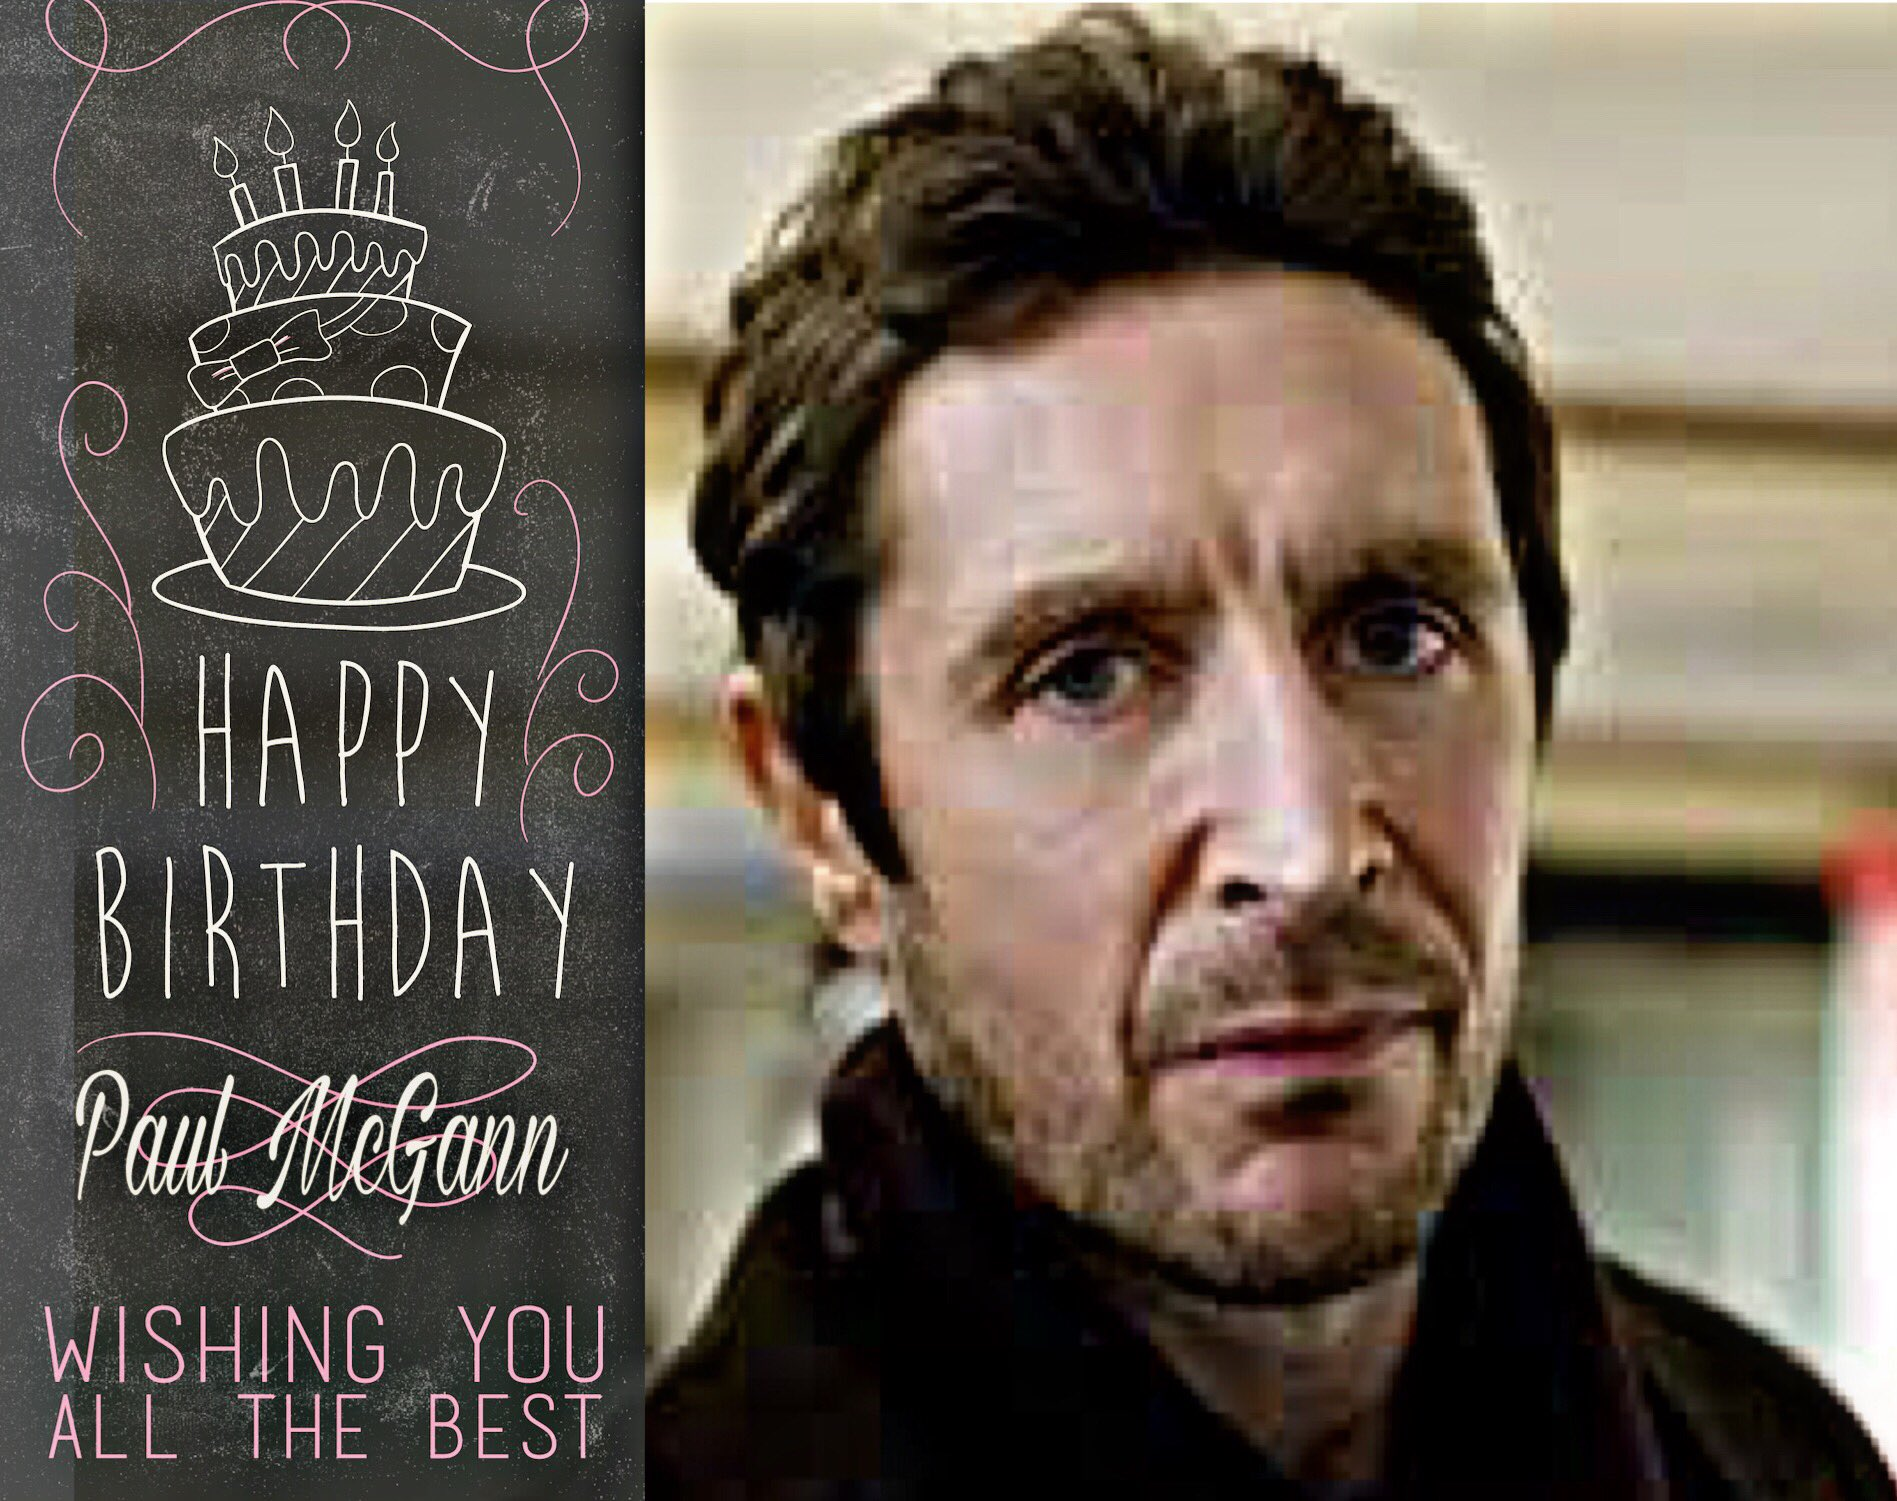 Happy Birthday Paul McGann, Sarah Radclyffe, Chris Woods, Nathan Fox, Prince Charles, Jake Livermore & Russell Tovey